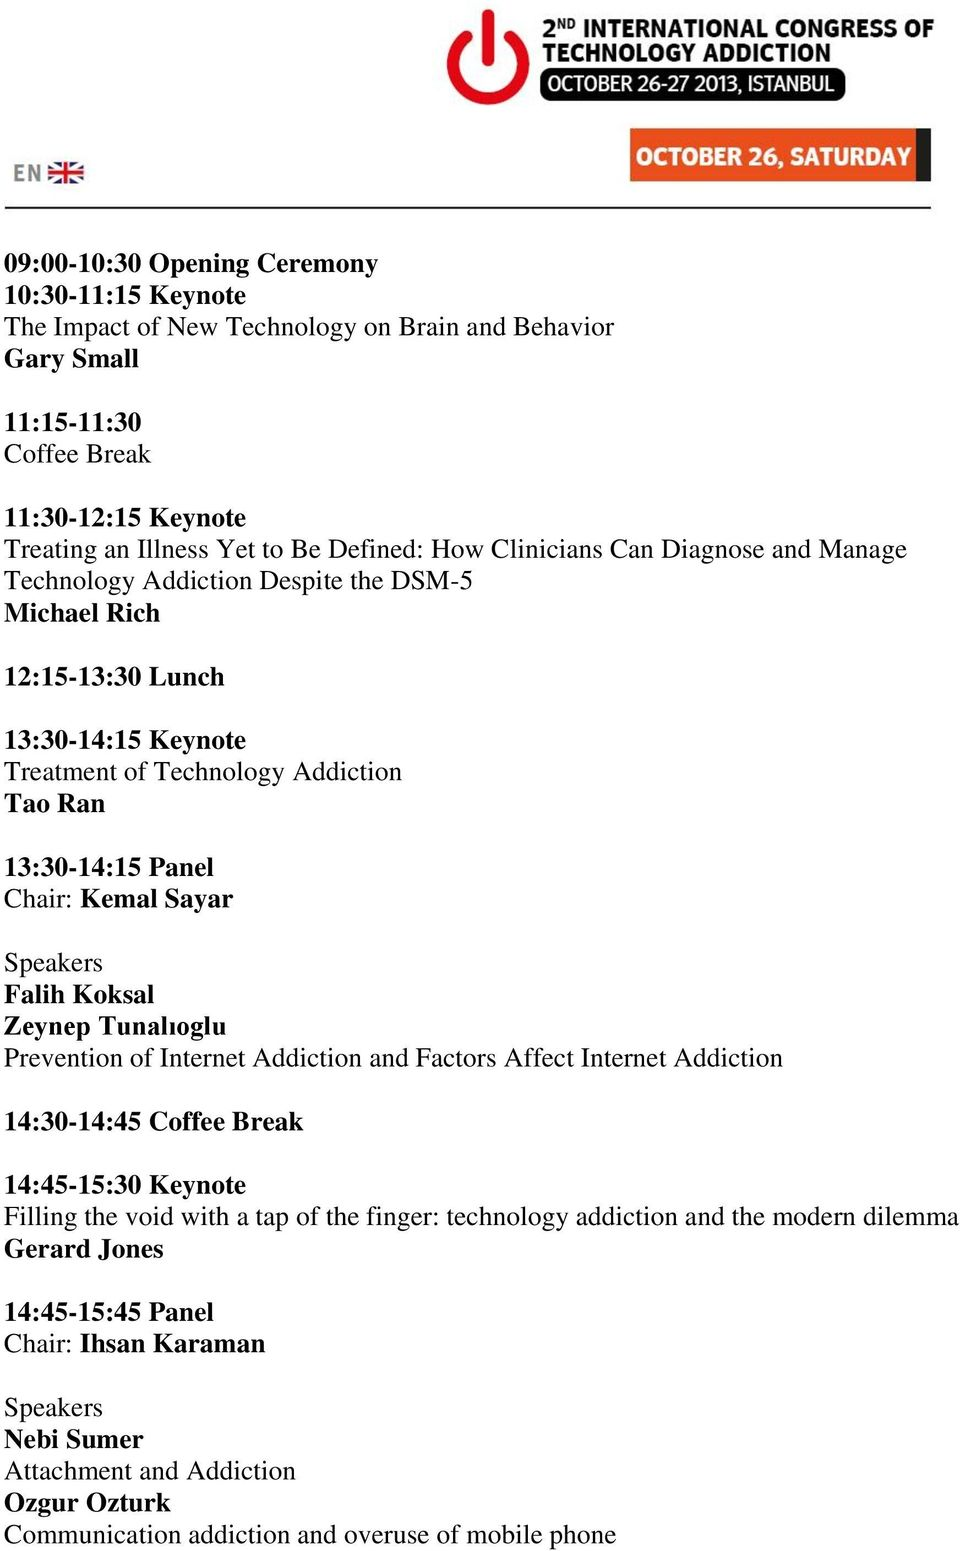 Kemal Sayar Falih Koksal Zeynep Tunalıoglu Prevention of Internet Addiction and Factors Affect Internet Addiction 14:30-14:45 Coffee Break 14:45-15:30 Keynote Filling the void with a tap of the